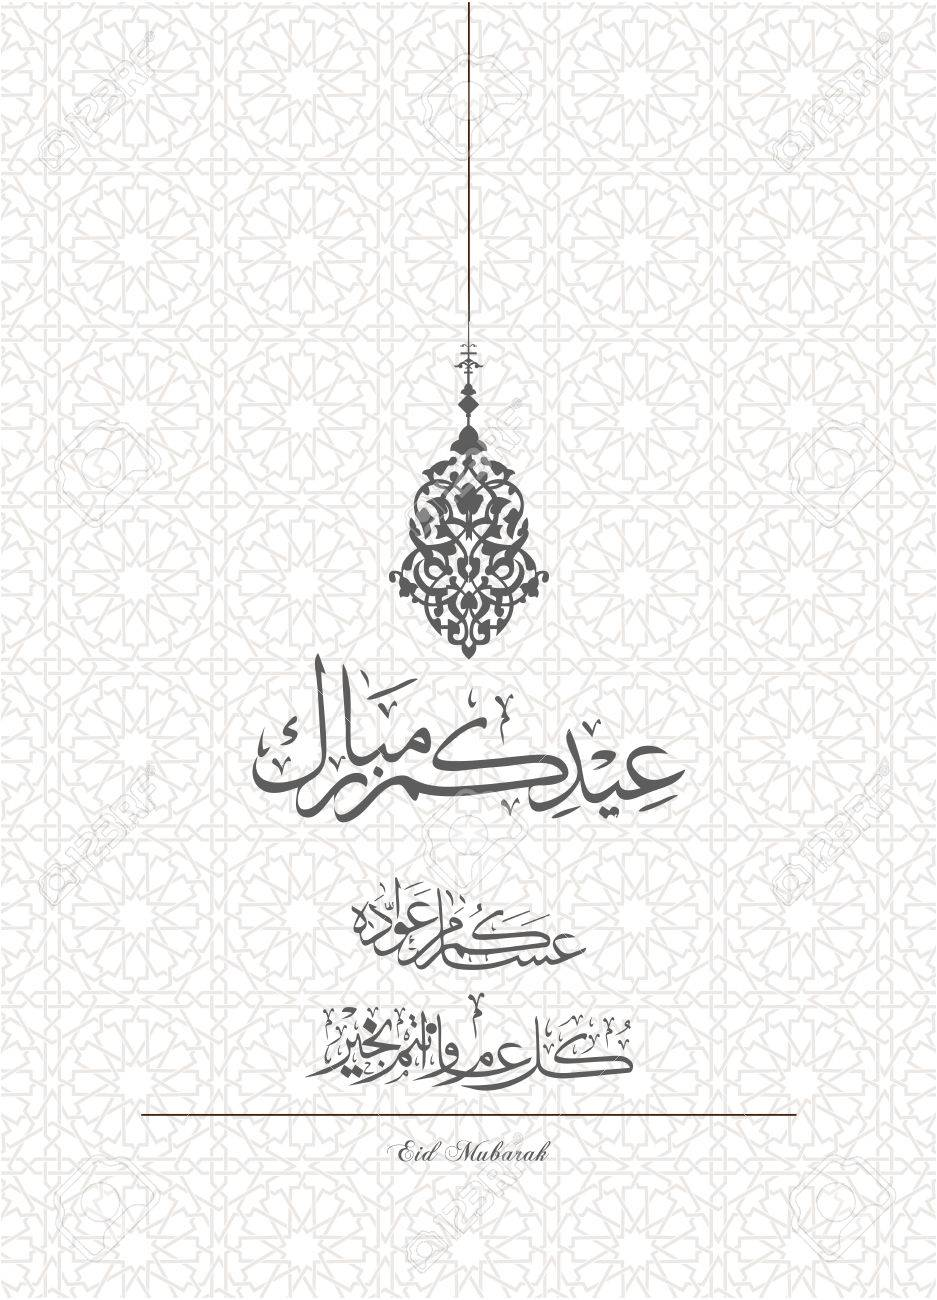 Greetings card on the occasion of eid al fitr to the muslims greetings card on the occasion of eid al fitr to the muslims beautiful islamic kristyandbryce Image collections